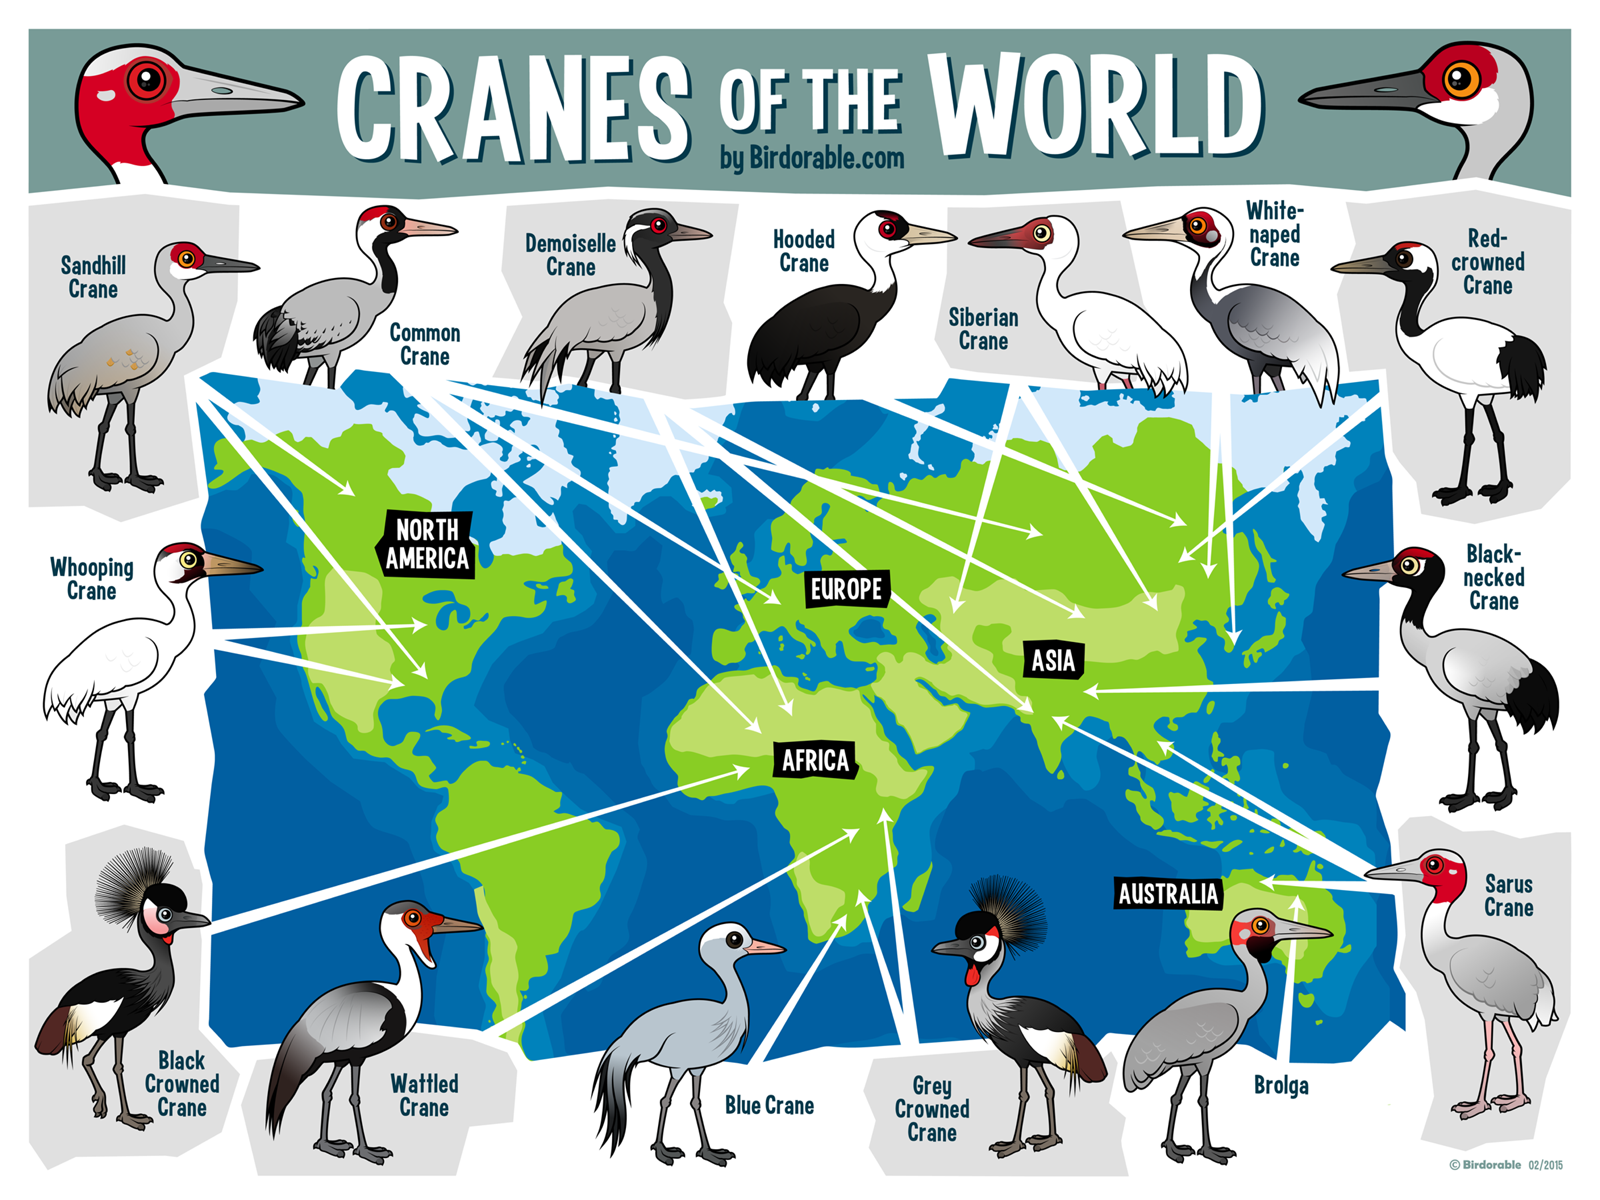 Download this free map with all cranes of the world with cute download this free map with all cranes of the world with cute cartoon birds by birdorable gumiabroncs Choice Image